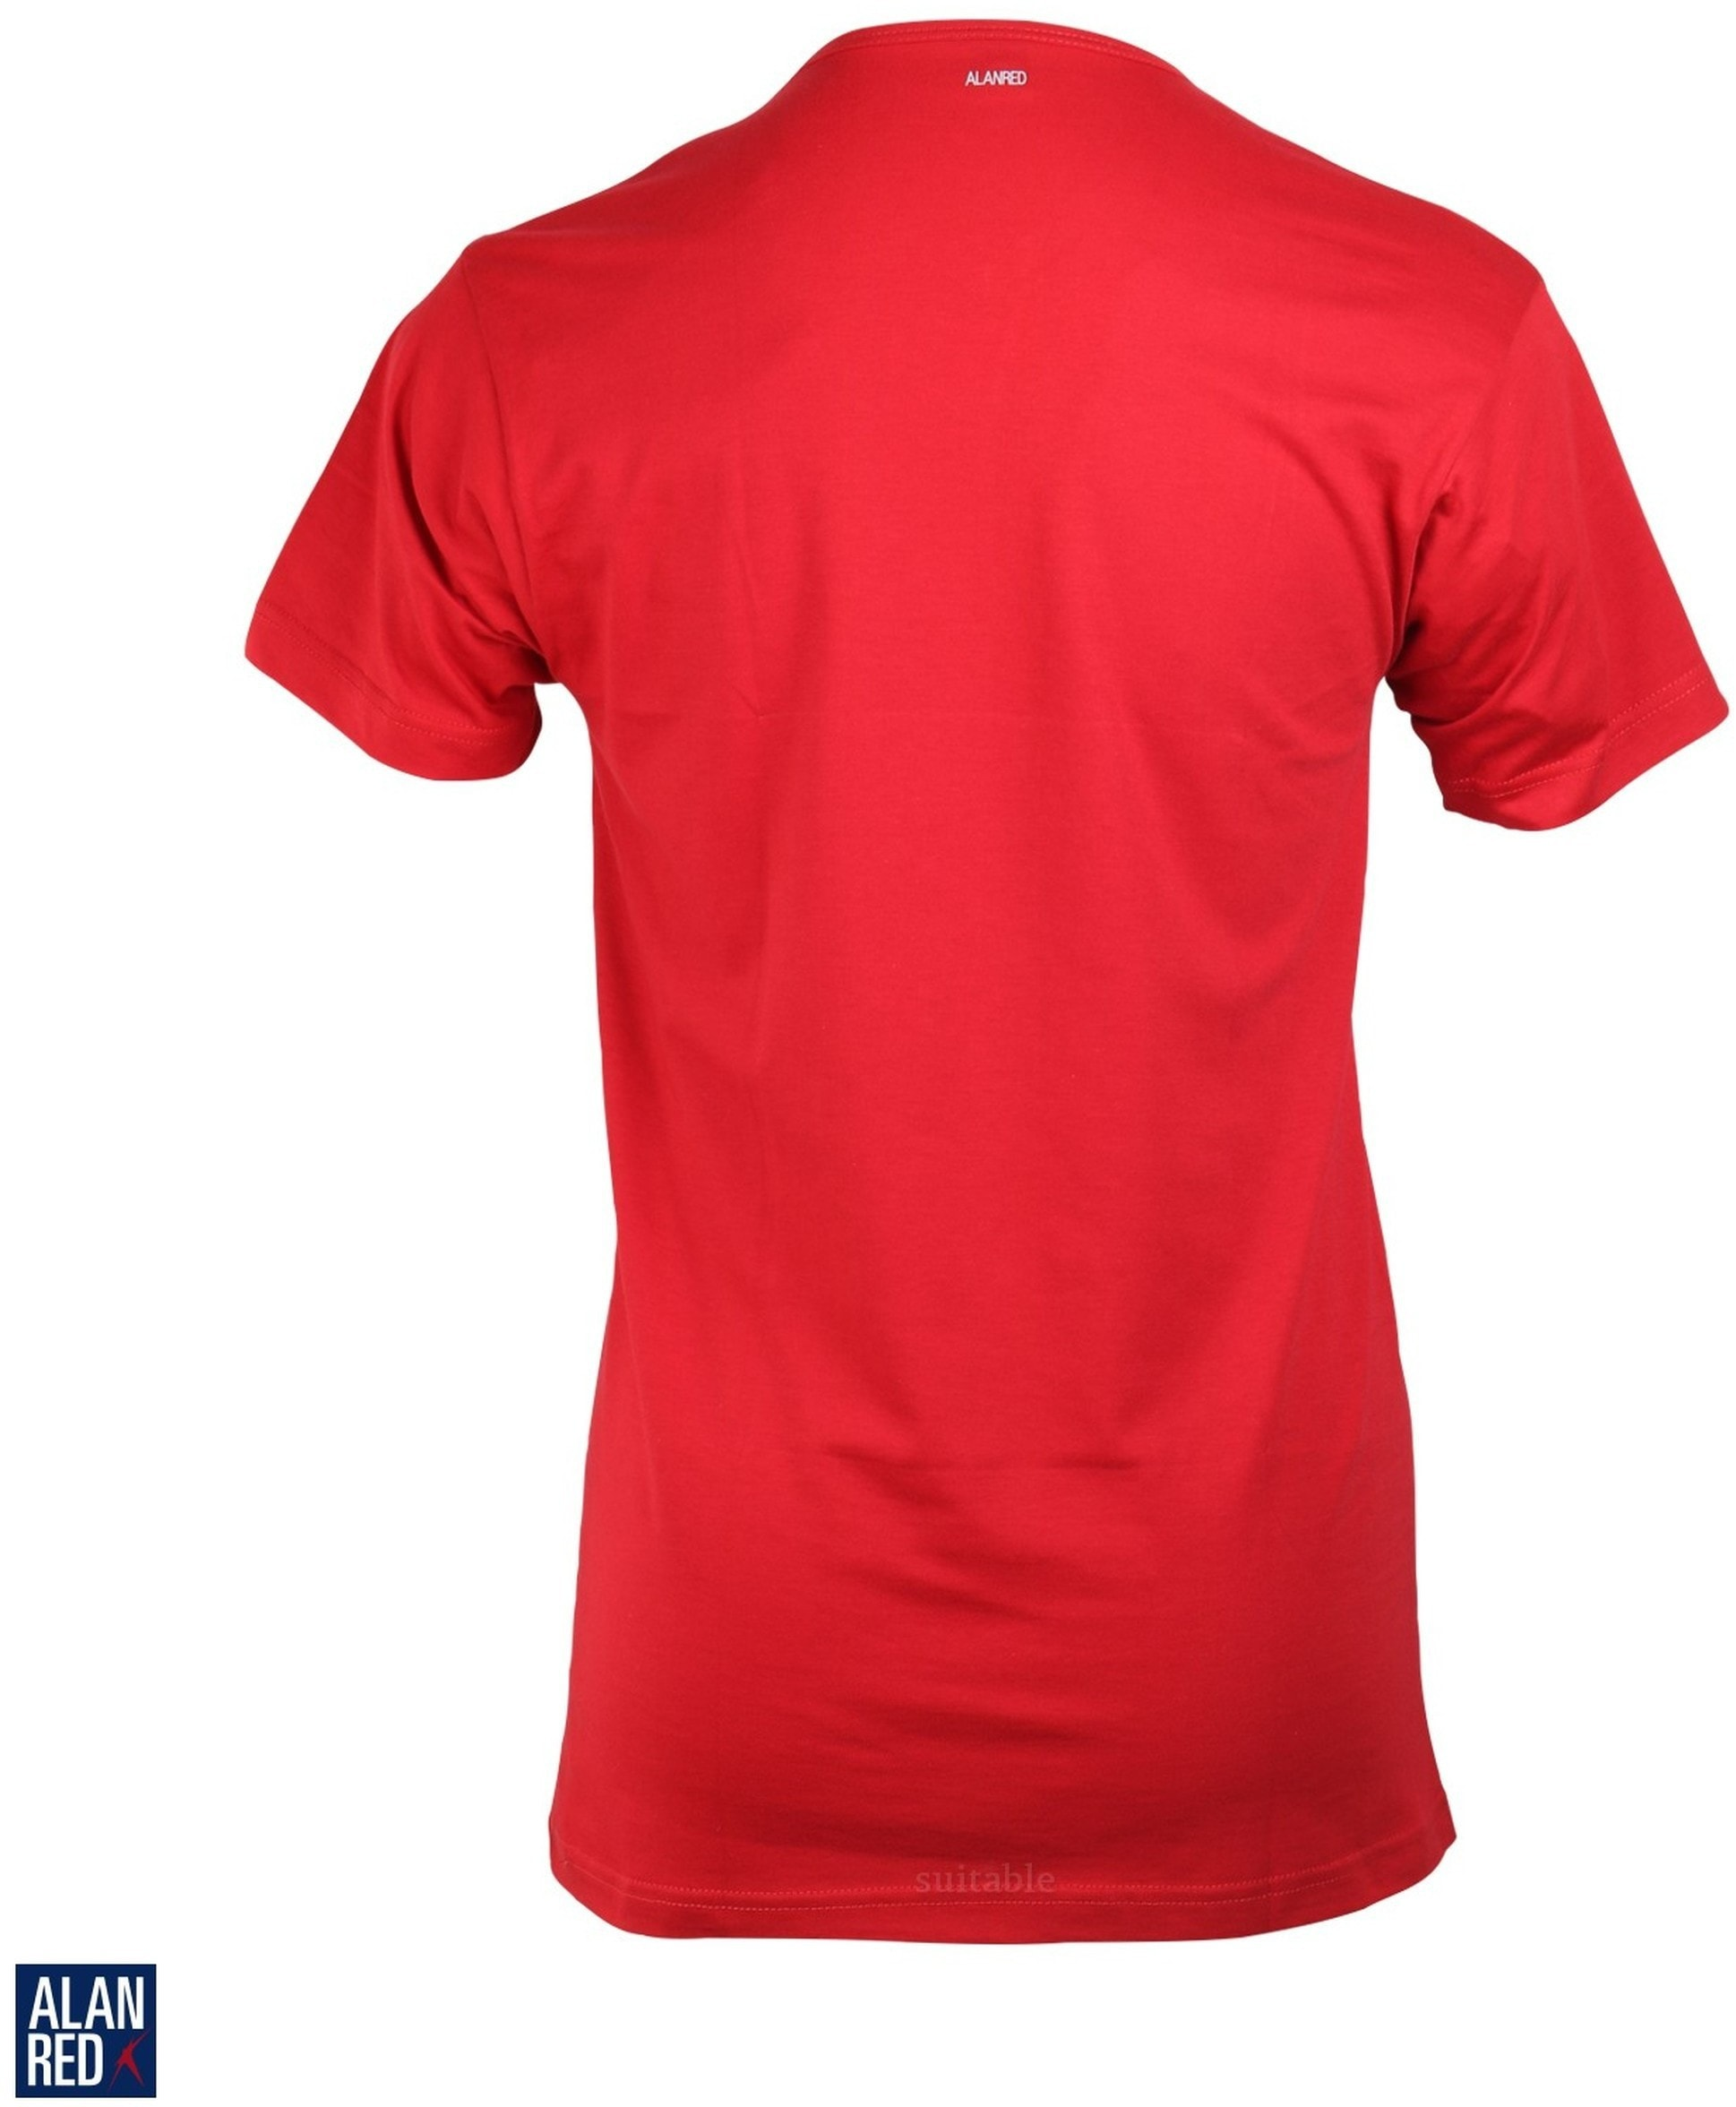 Alan Red Vermont T-shirt V-Neck Red 1-Pack foto 1